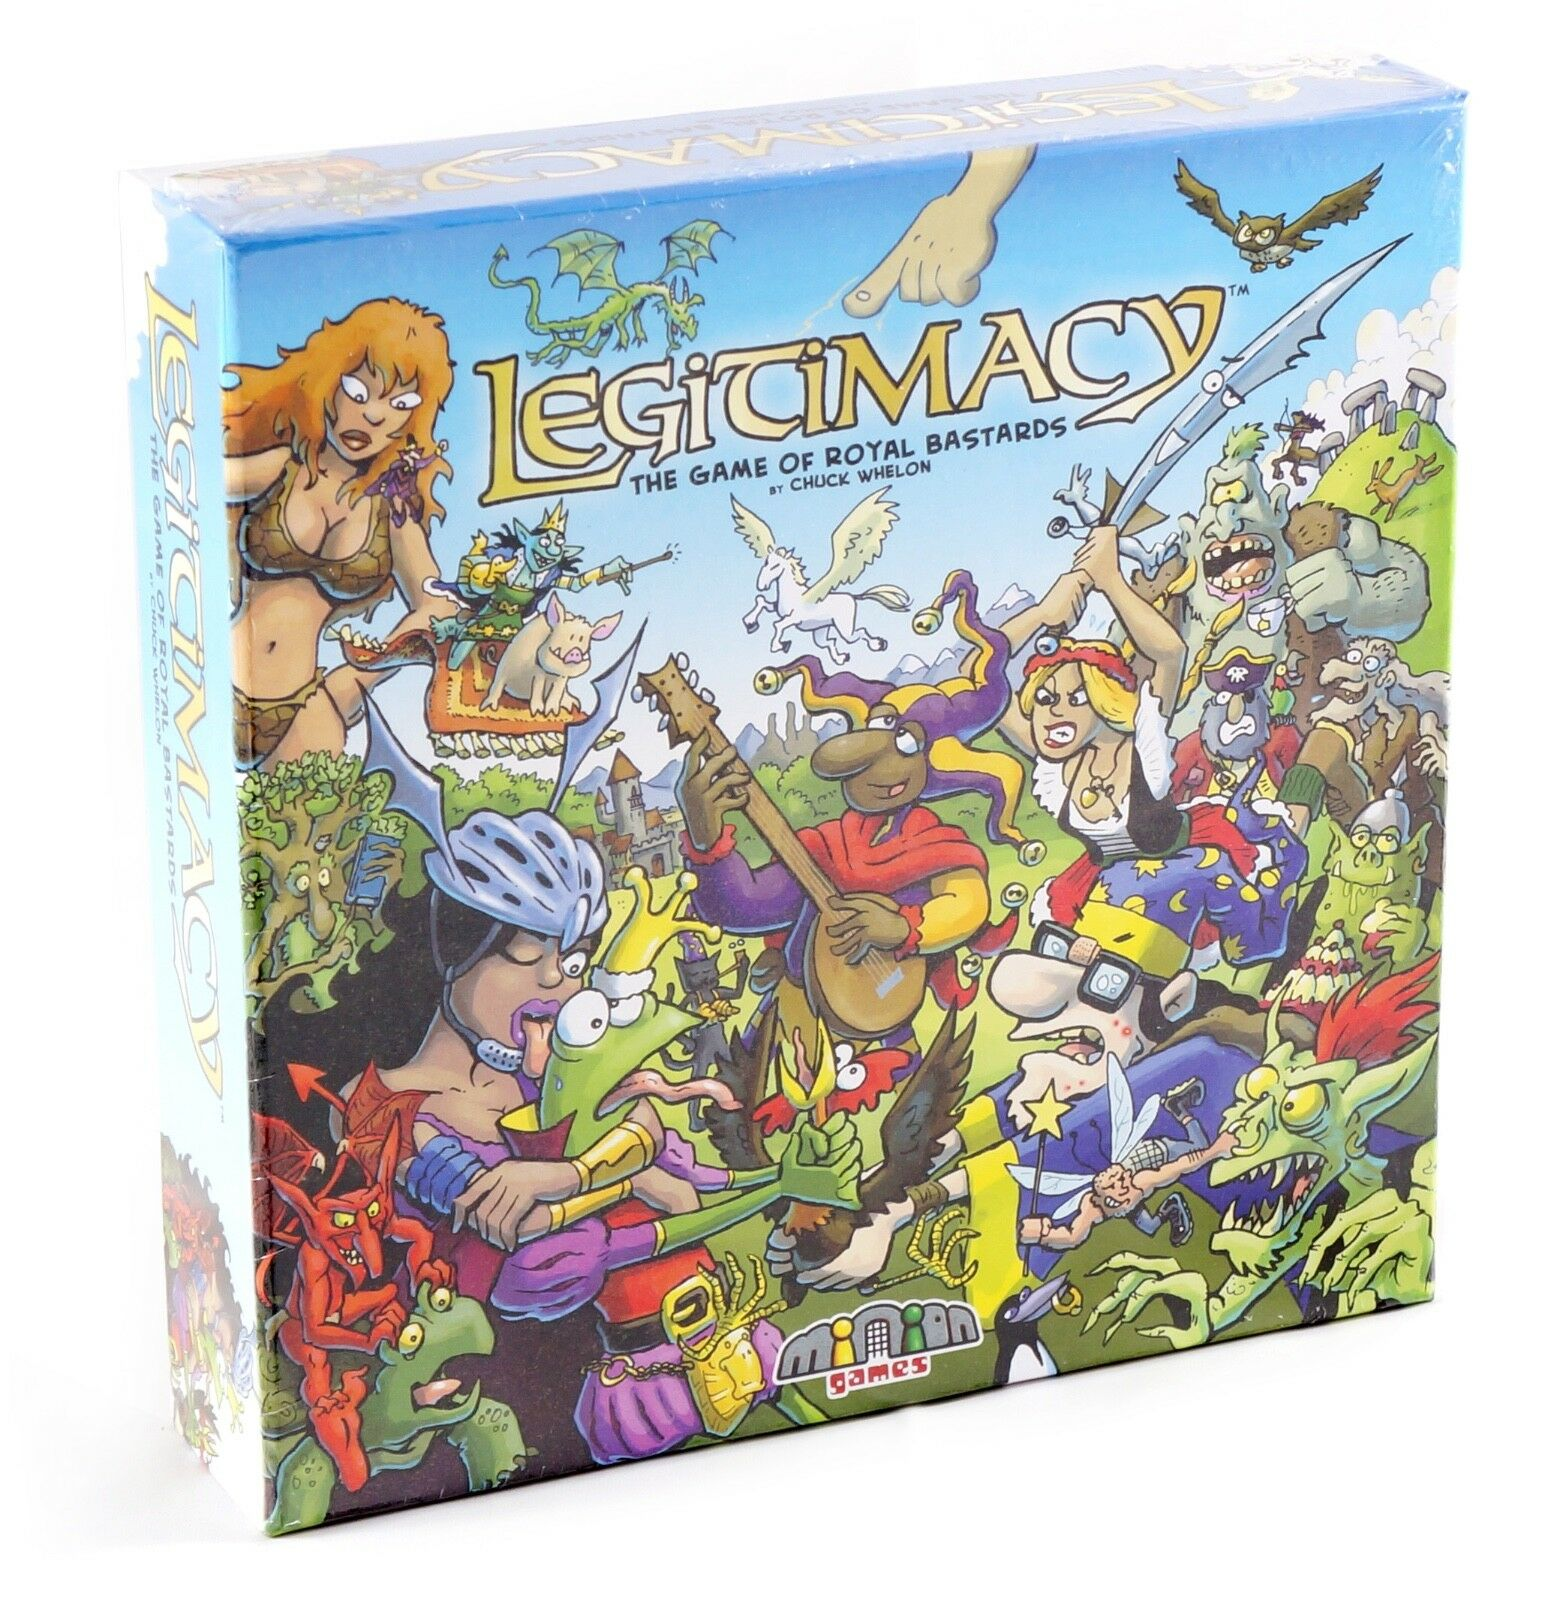 Legitimacy -  Minion Games Boardgame - WHOLESALE LOT of 20 SETS